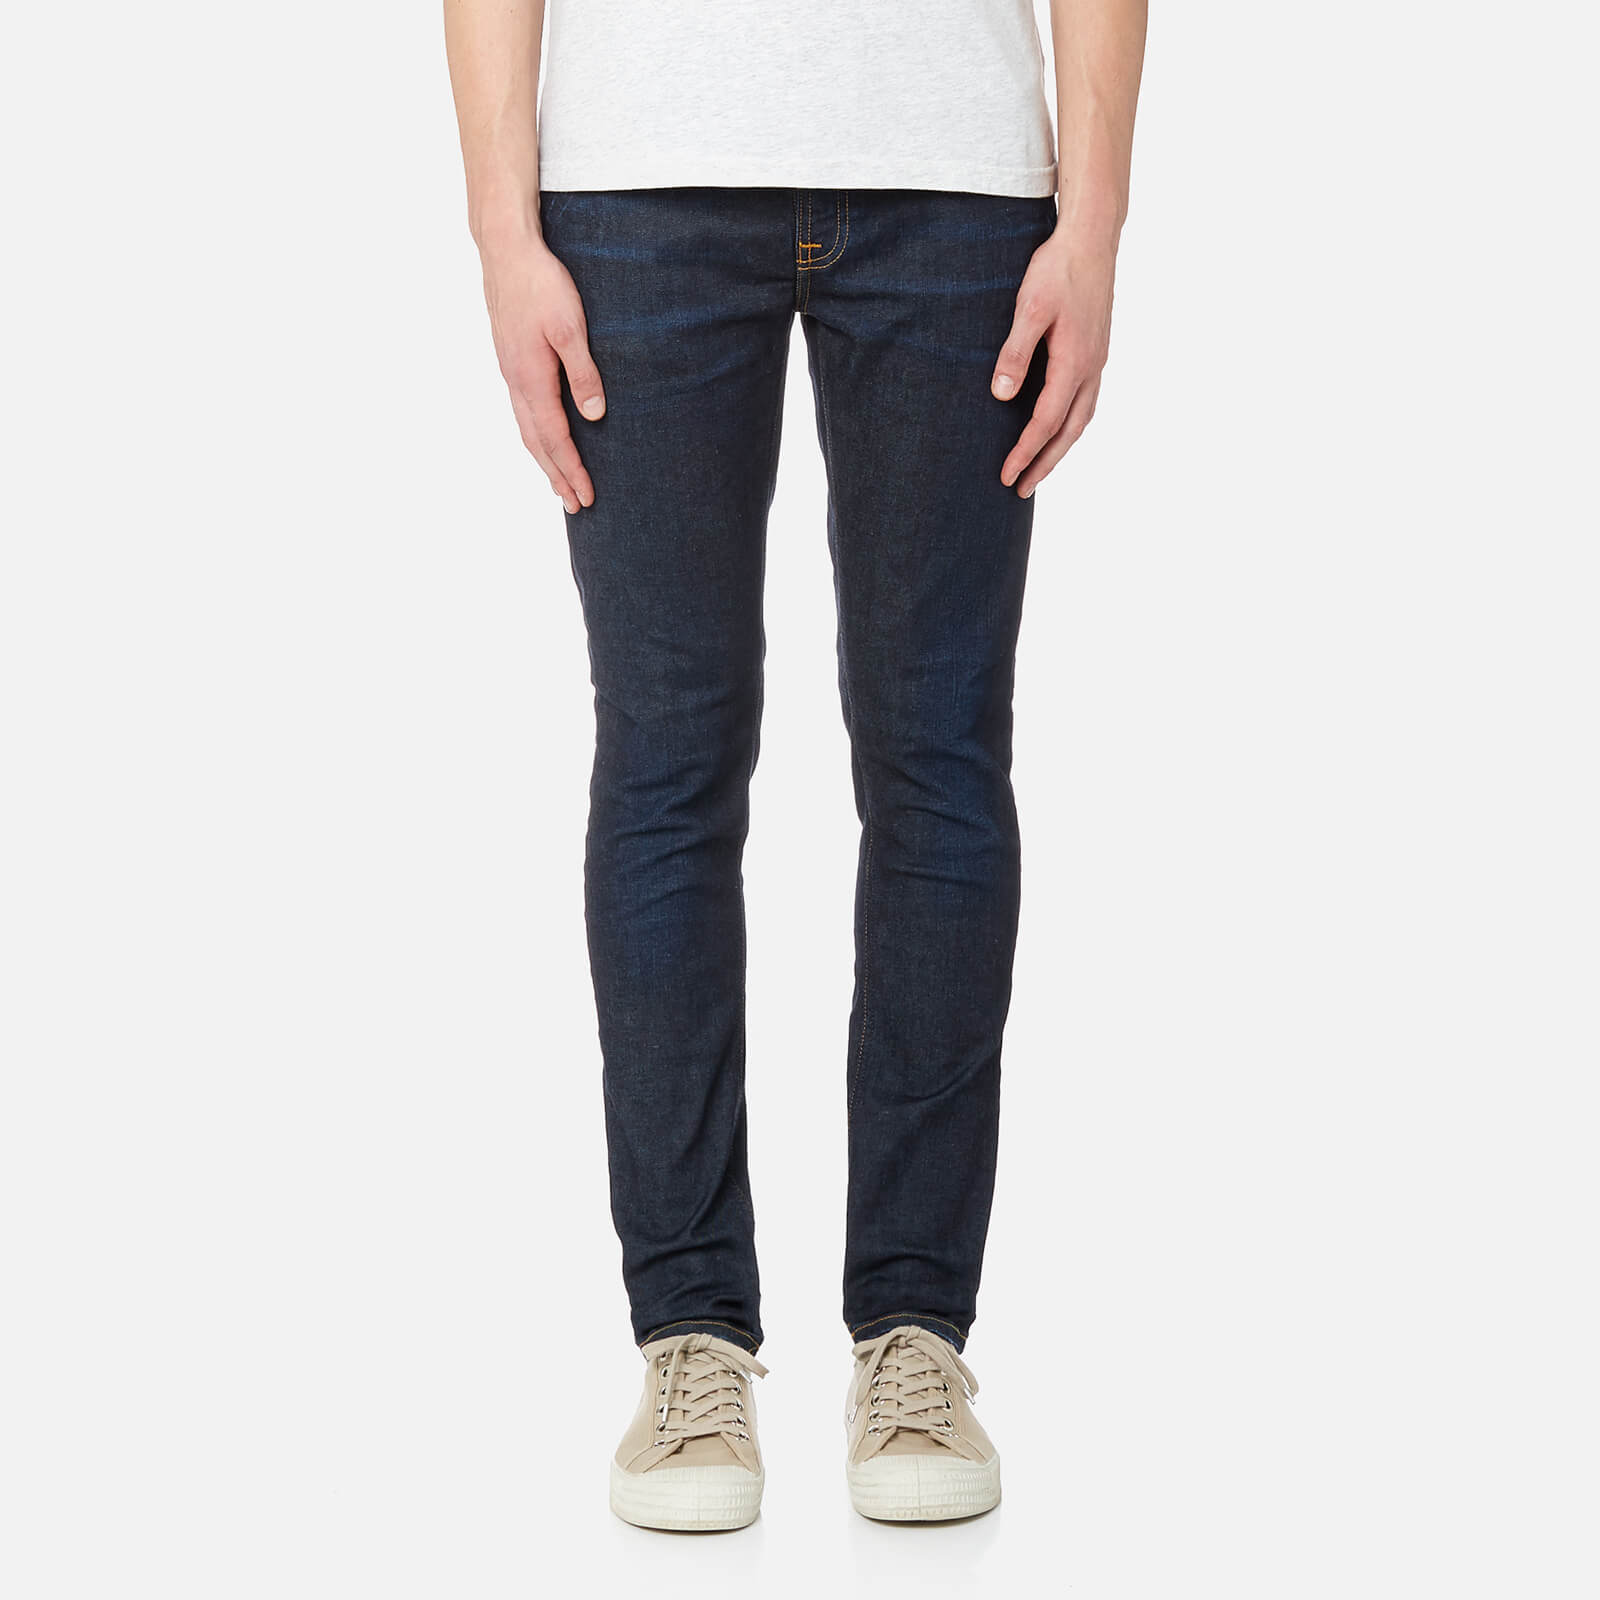 fa5d11d8a0dca Nudie Jeans Men s Skinny Lin Skinny Jeans - Nearly Dry - Free UK ...